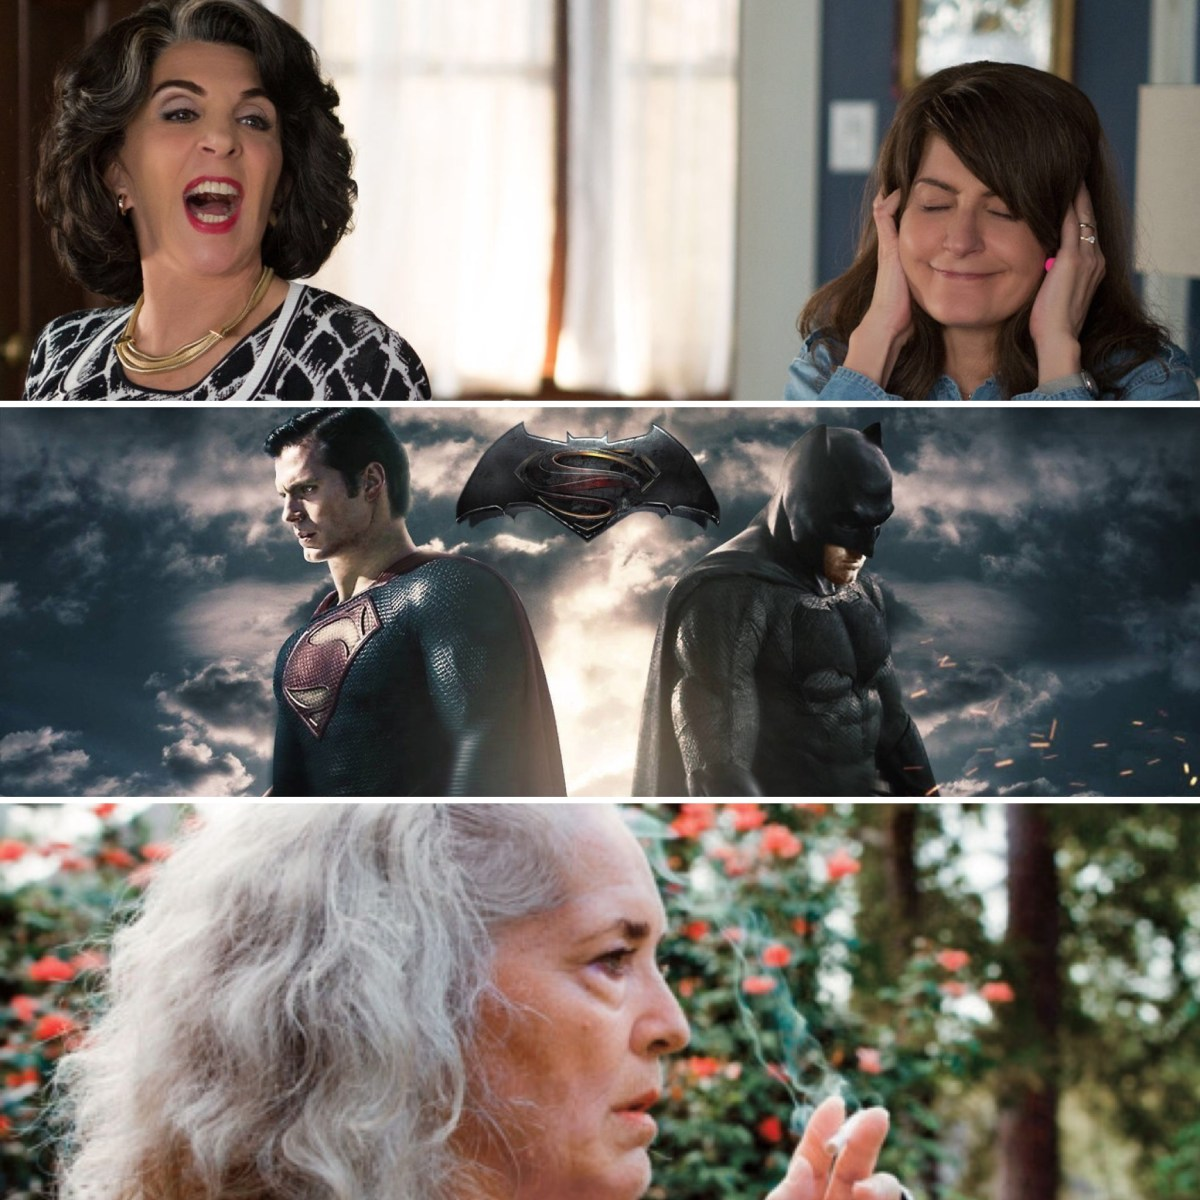 The Binge Movie Podcast: My Big Fat Greek Wedding 2 | Batman v Superman: Dawn of Justice | Krisha